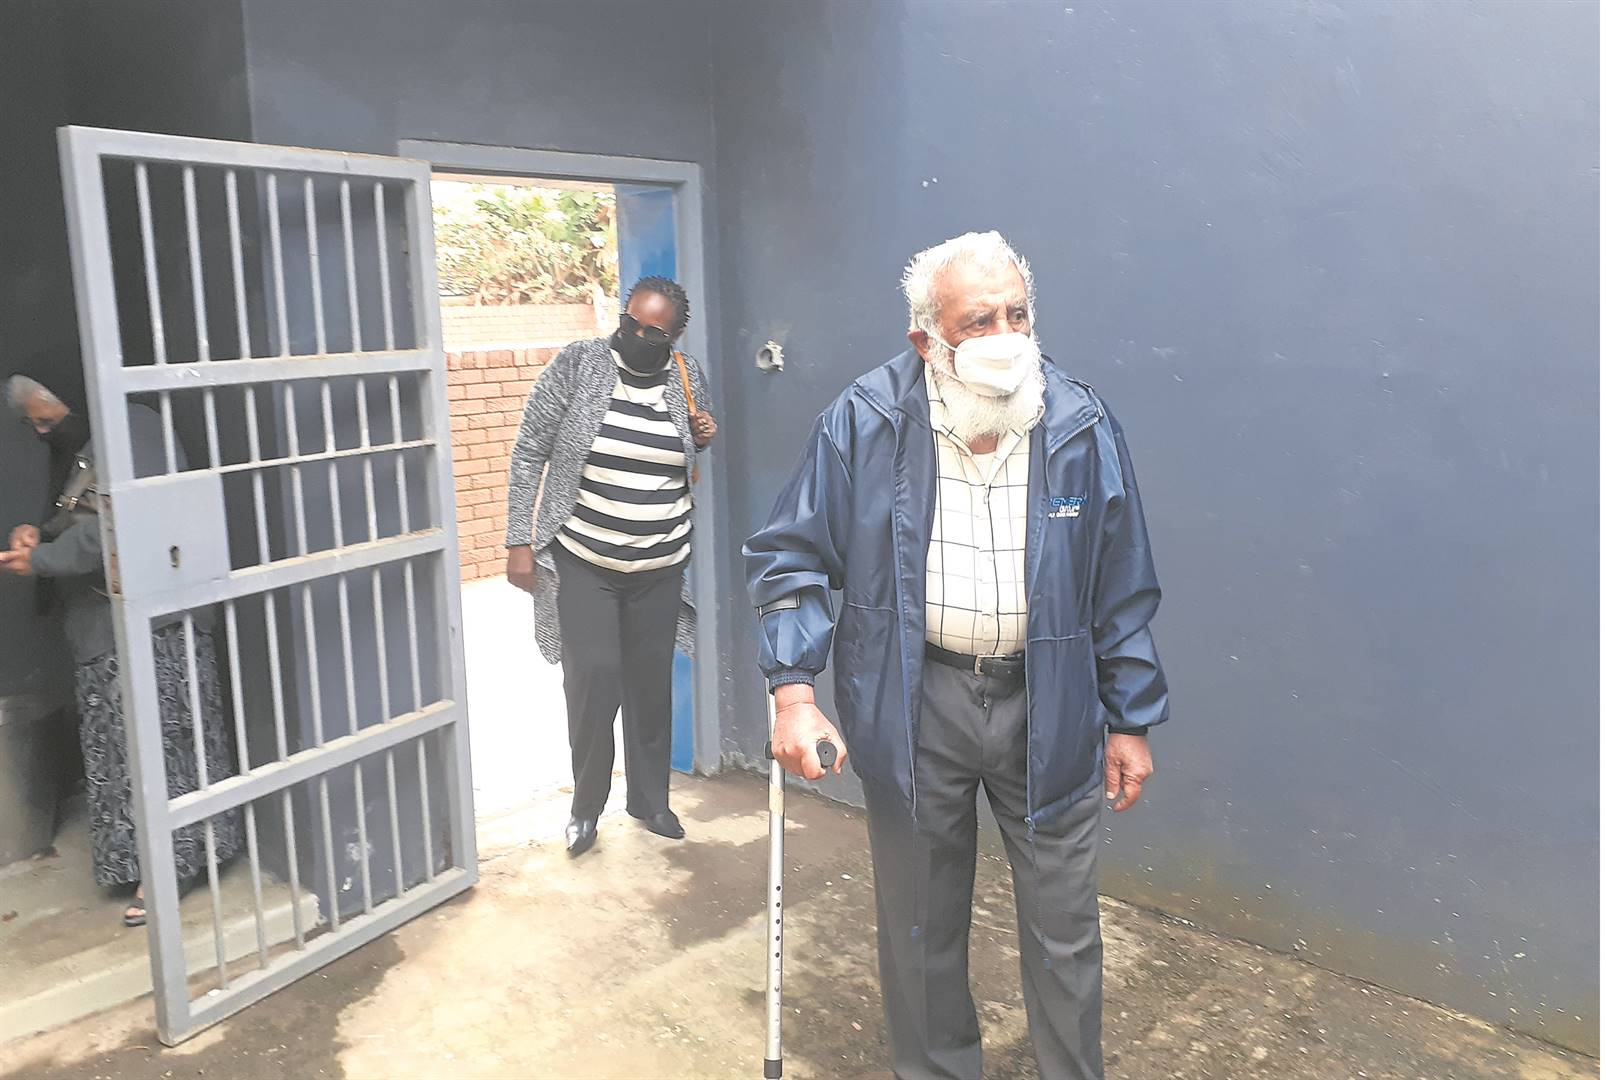 For the first time, Ismail Haffejee enters the cell at the Brighton Police Station where his brother, Dr Hoosen Haffejee, died in August 1977.